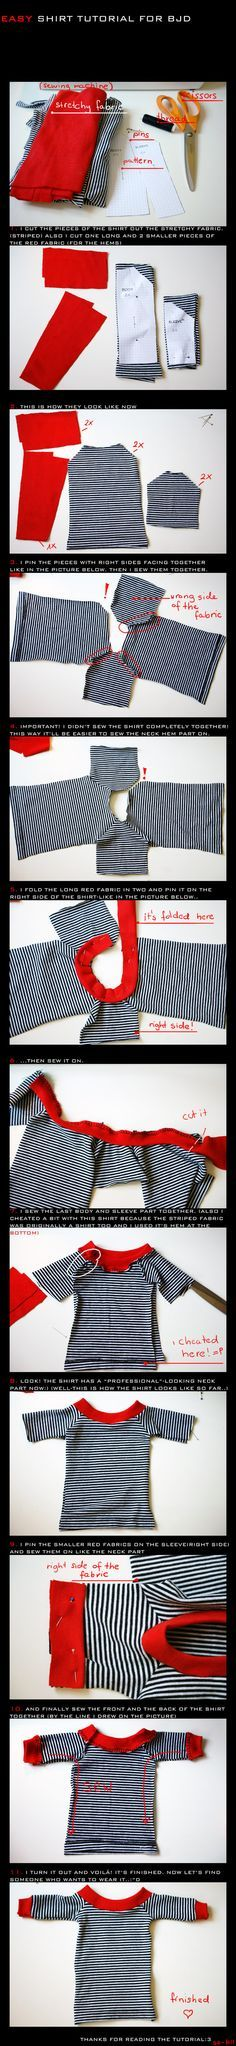 BJD shirt - TUTORIAL by so-fiii.deviantart.com on @deviantART